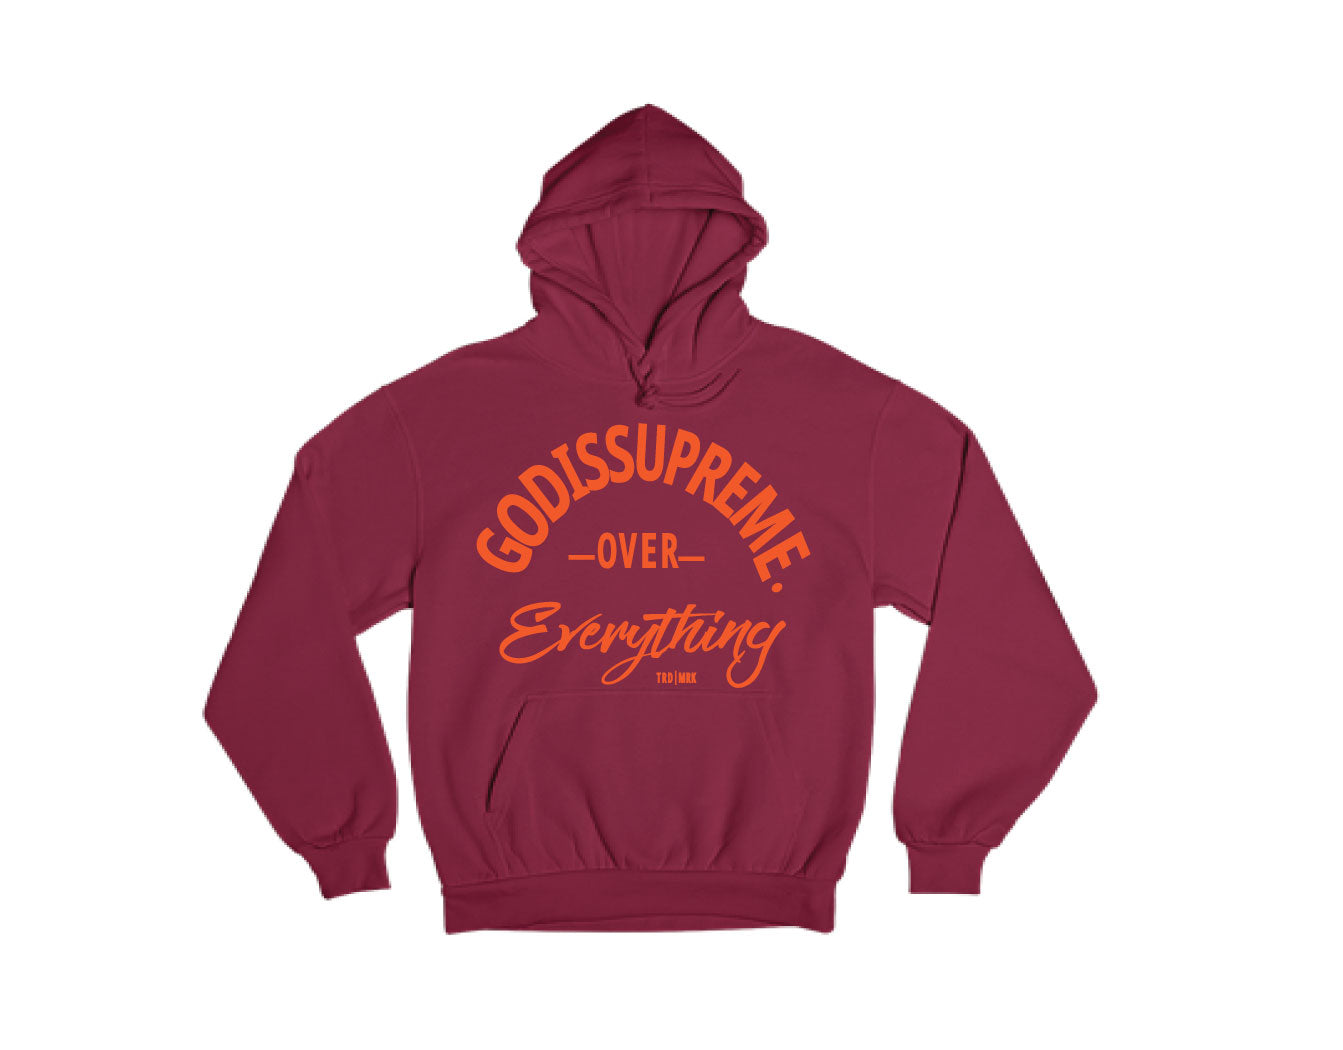 God is Supreme Over Everything Orage/ Maroon Hoodie